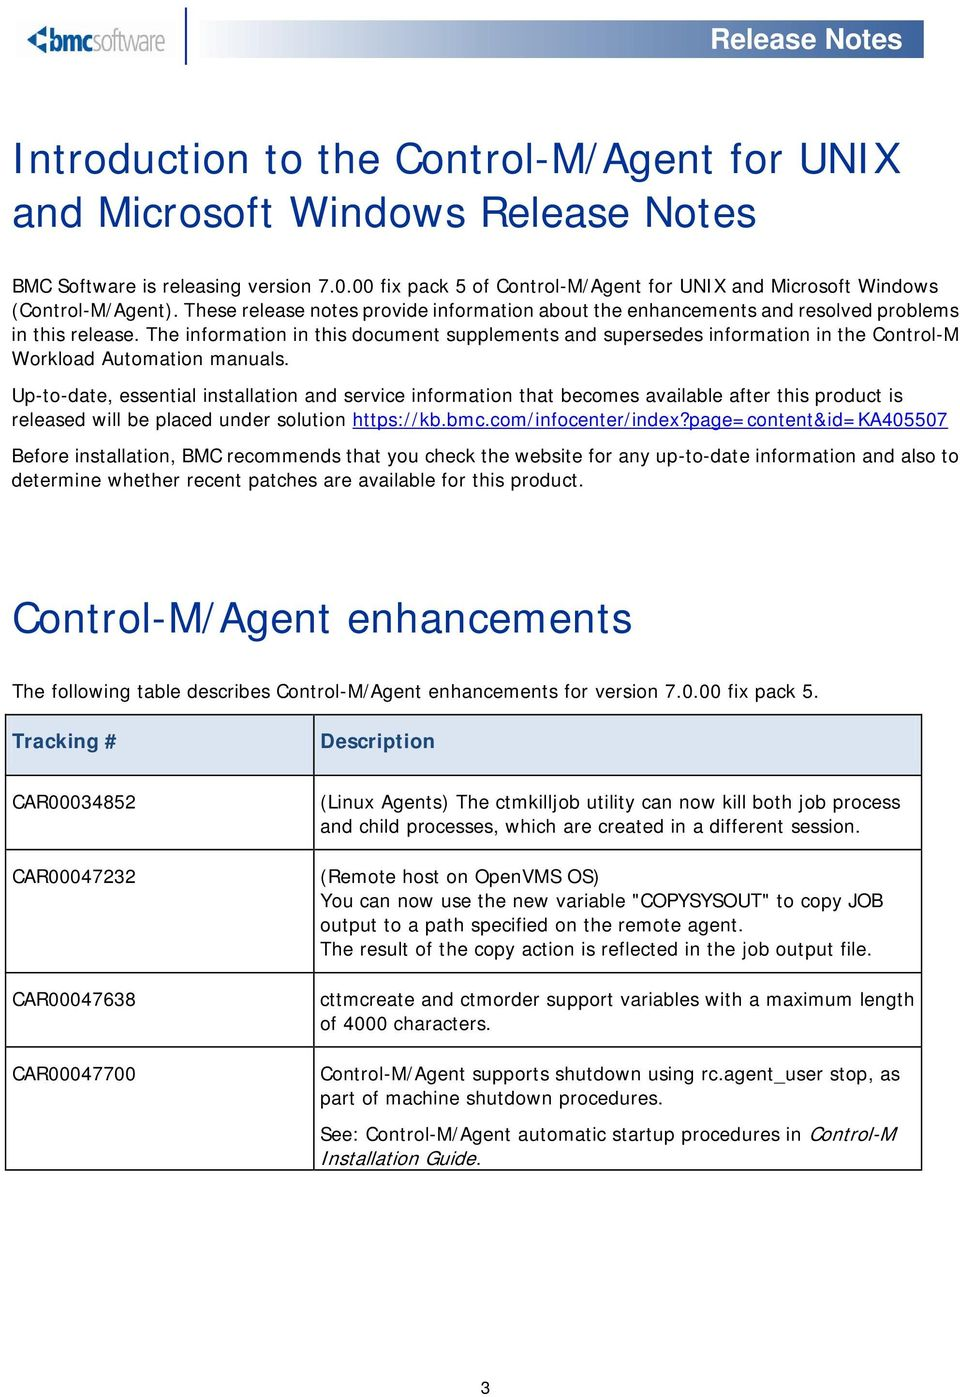 Control-m/agent for unix and microsoft windows release notes.